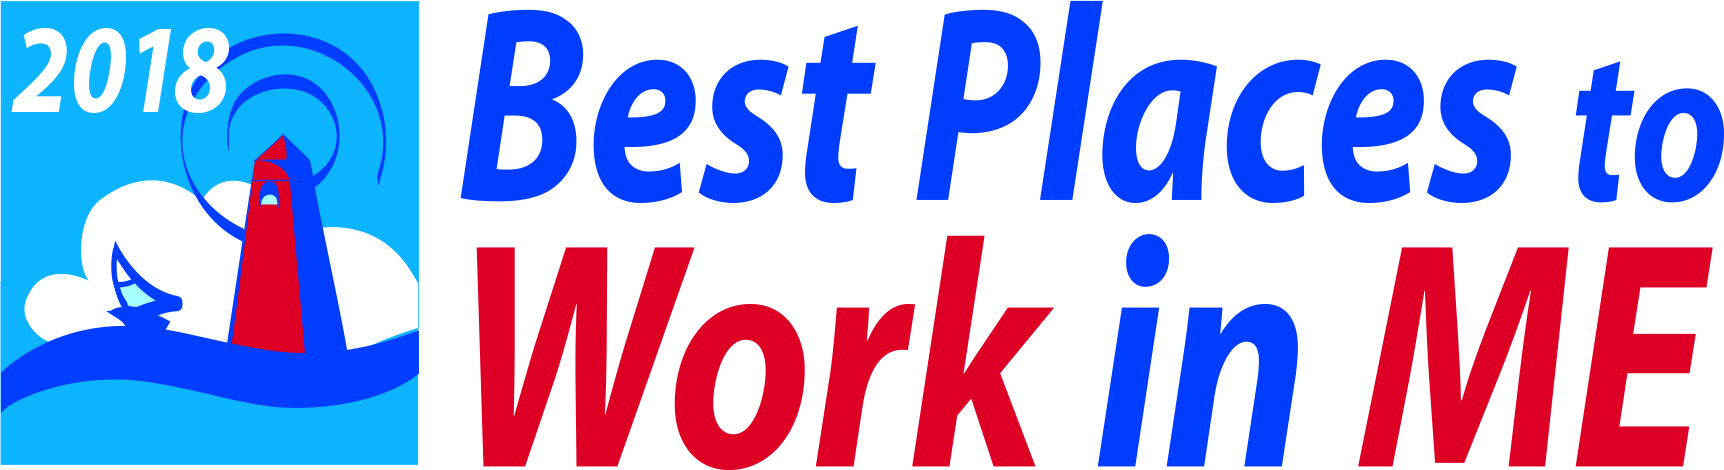 SymQuest Named One of the Best Places to Work in Maine for Fourth Consecutive Year